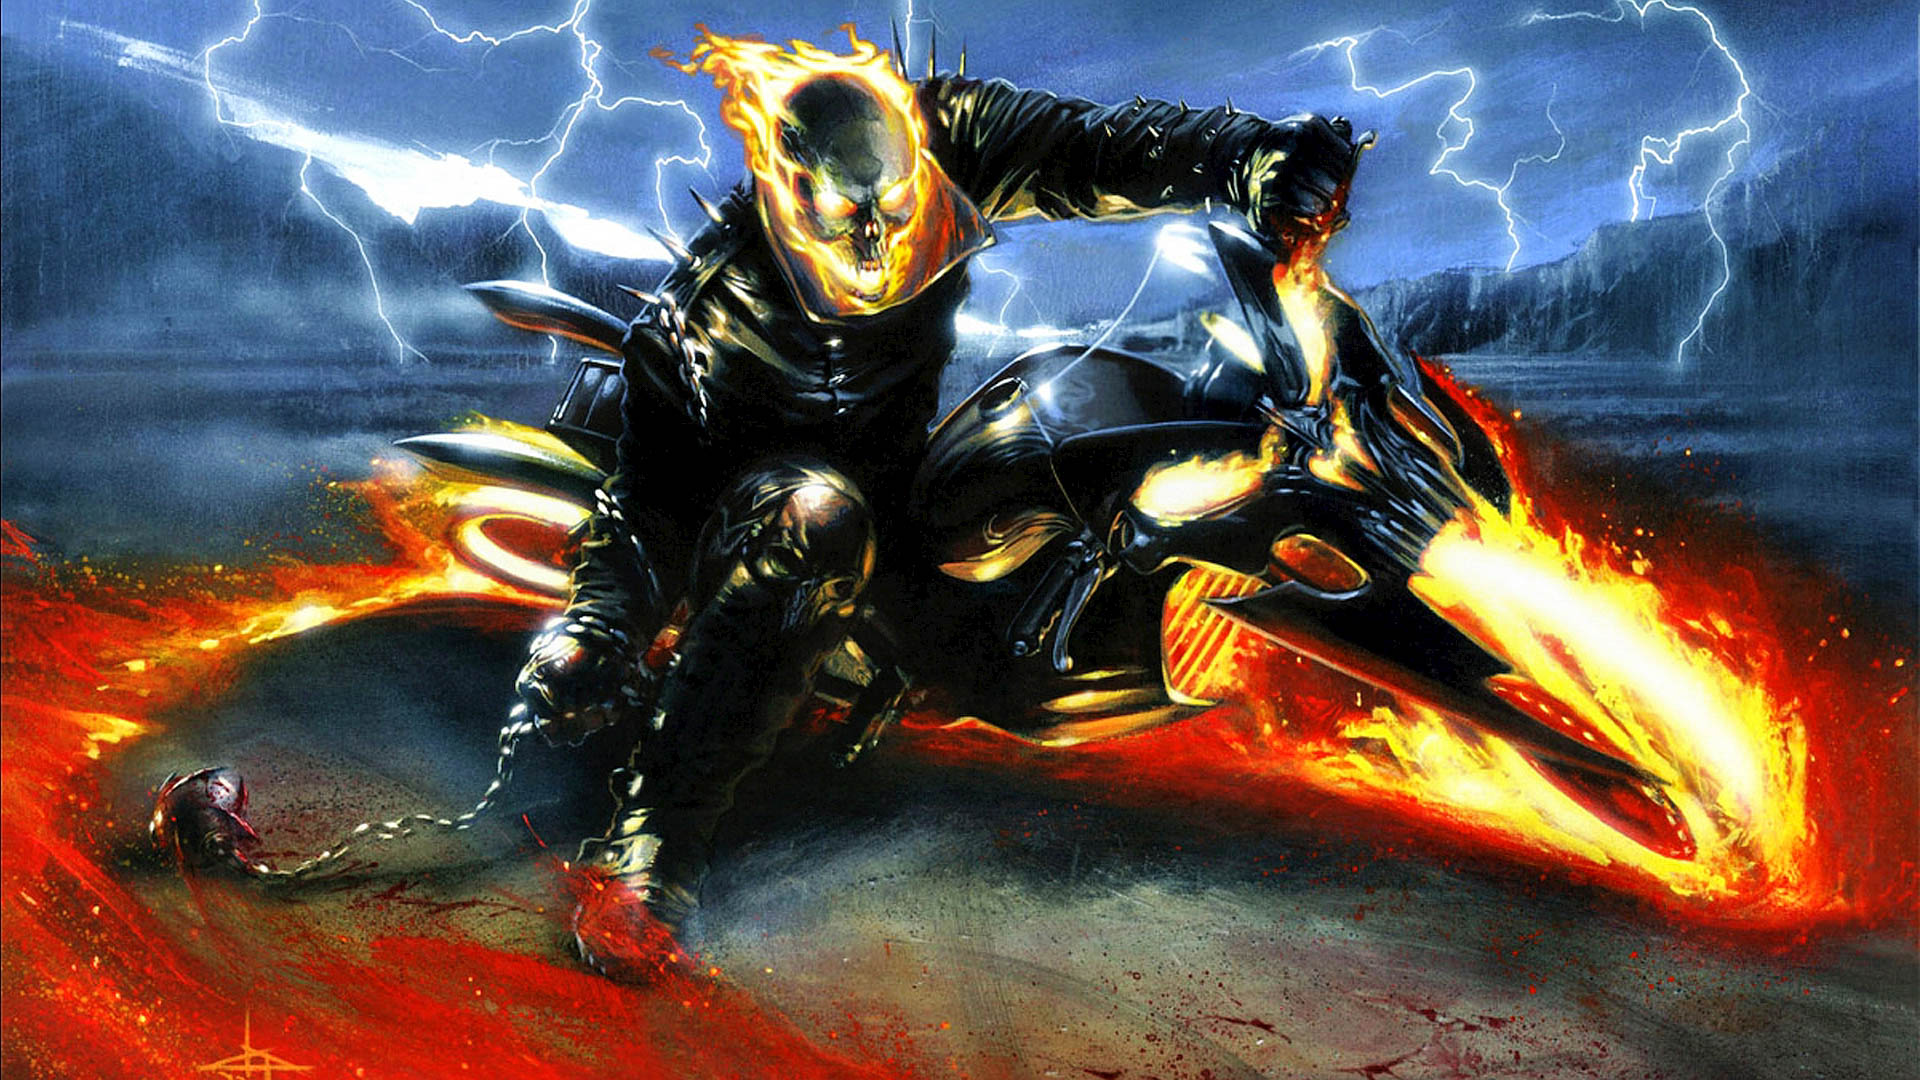 Ghost rider amazing wallpaers hd pictures all hd wallpapers - Ghost wallpapers for desktop hd ...